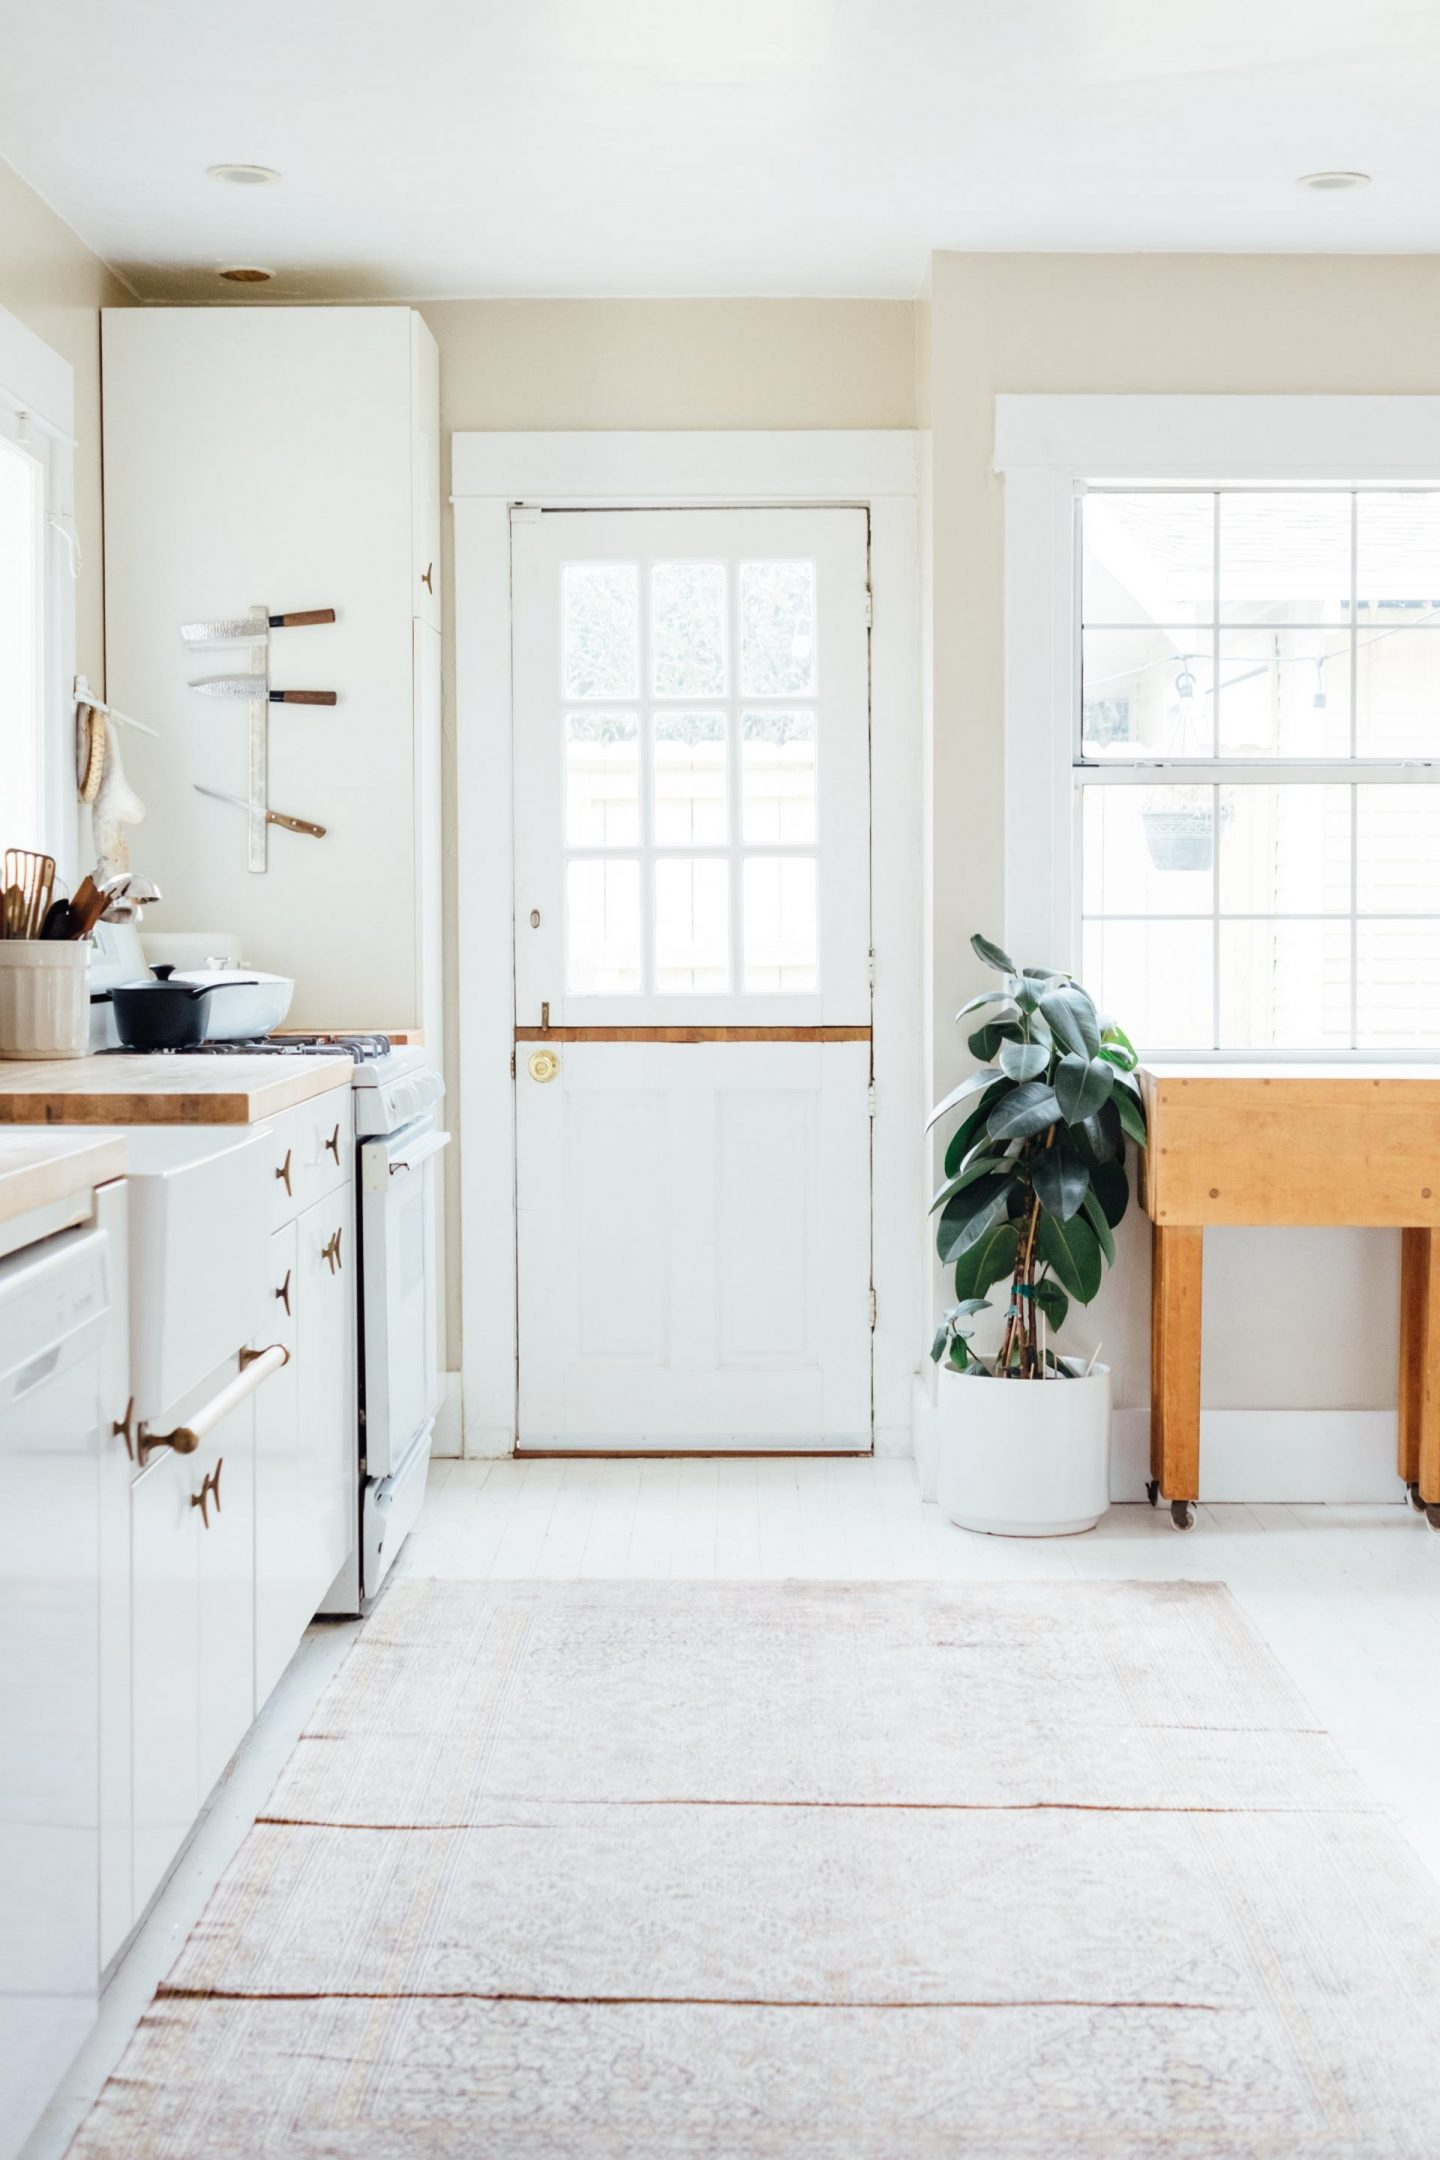 10 Low Waste Kitchen Swaps (You Might Not Have Thought Of)